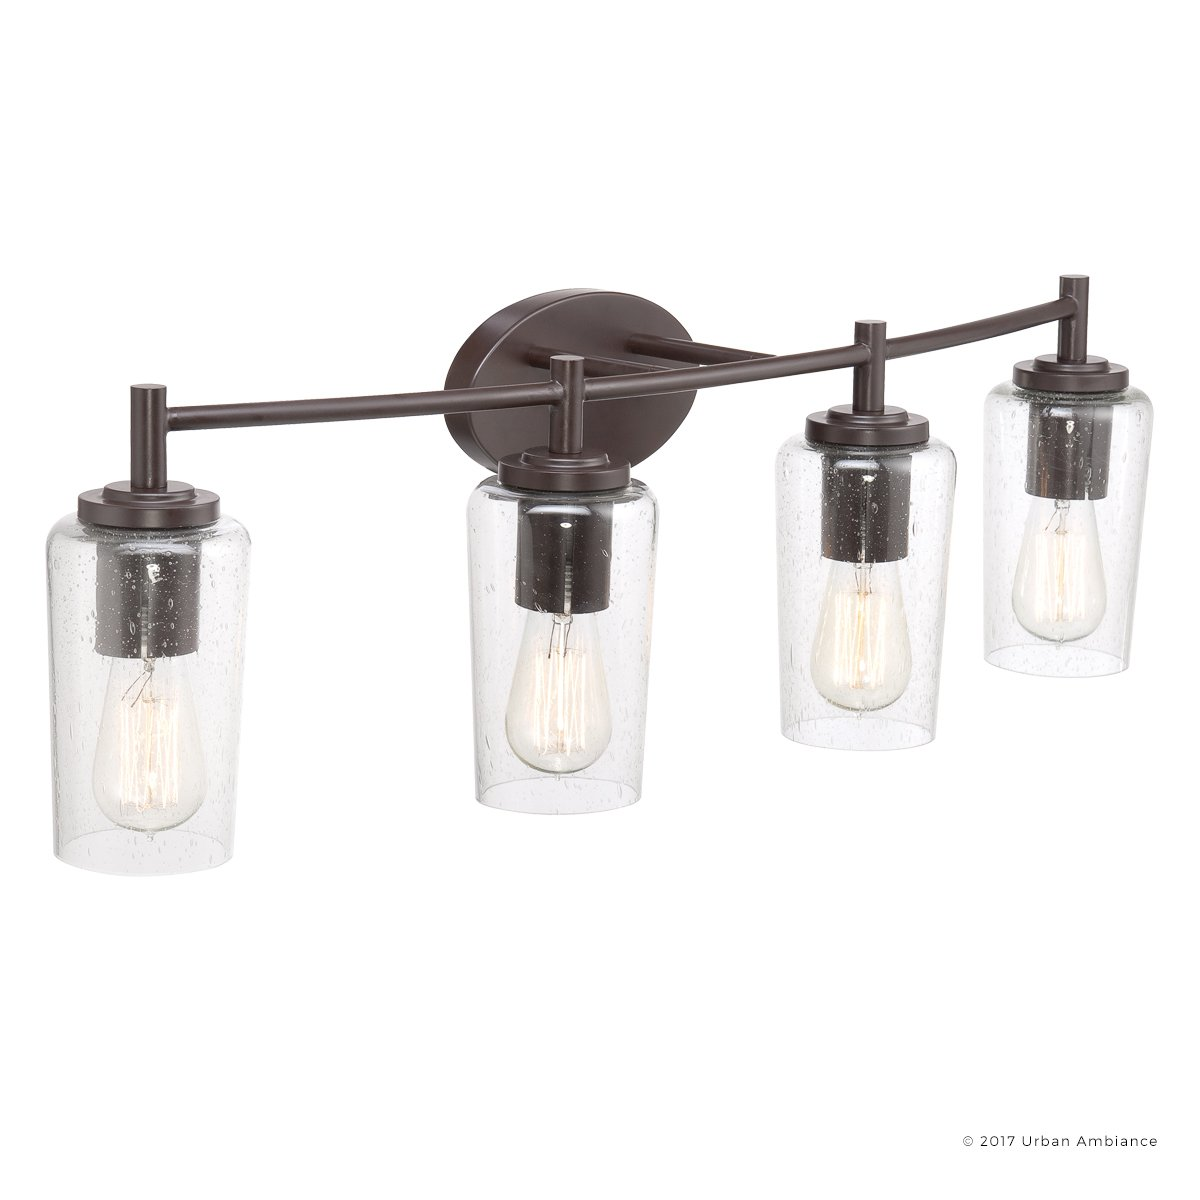 Luxury Vintage Bathroom Vanity Light, Large Size: 10''H x 32.5''W, with Antique Style Elements, Elegant Estate Bronze Finish and Seeded Glass, Includes Edison Bulbs, UQL2273 by Urban Ambiance